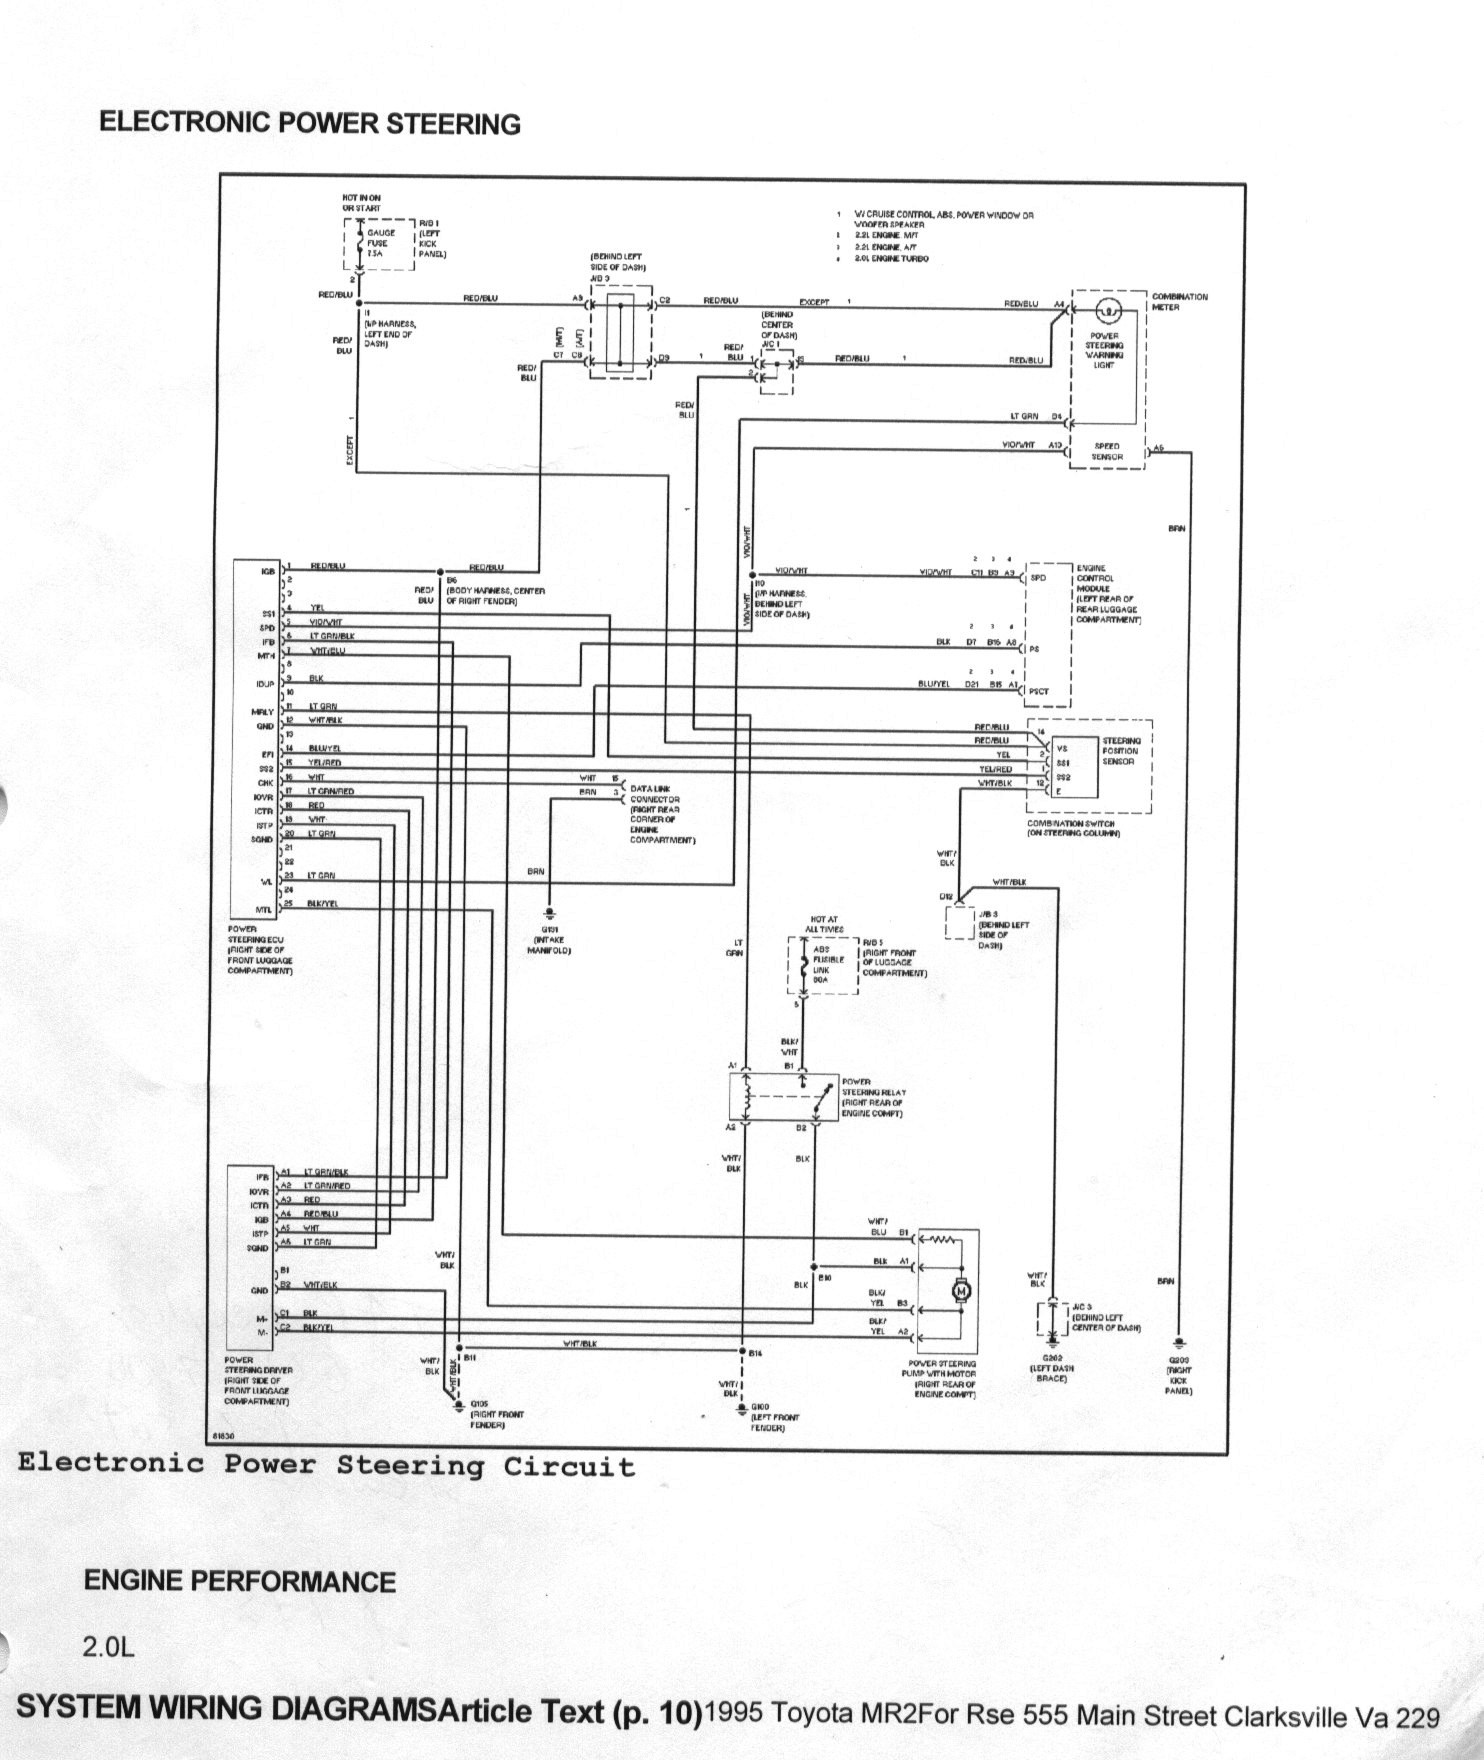 Gx390 together with New Holland Ce Europe 2013 likewise Yfm400fwn Wiring Diagrams furthermore Used Official 1985 1986 Honda Vt1100c Shadow Factory Service Manual U61mg801 moreover Diagram view. on honda wiring diagram